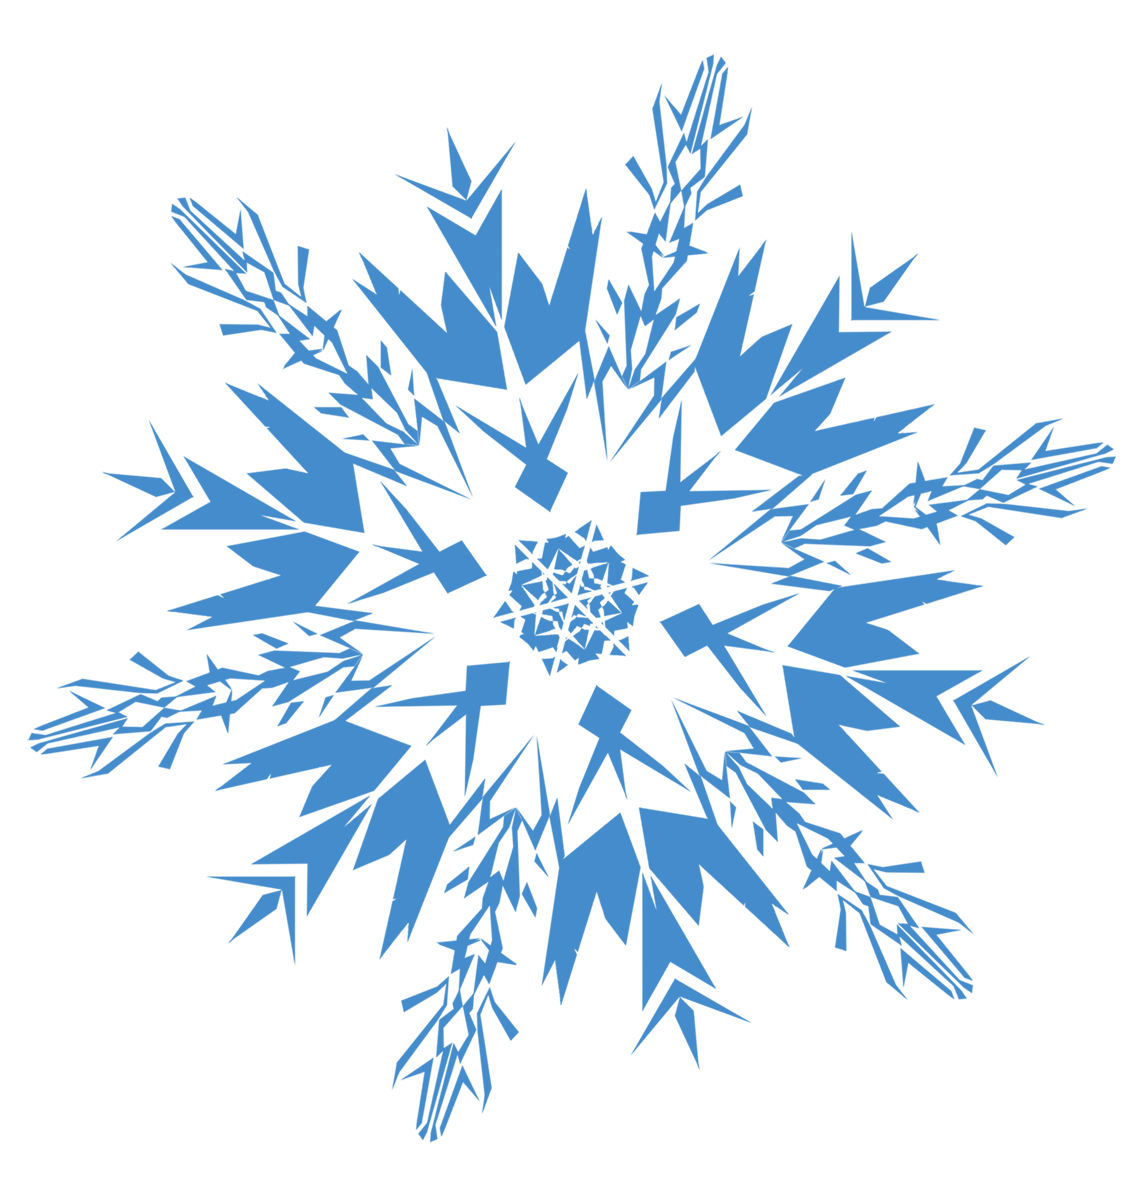 Eight section snowflake clipart vector royalty free Snowflake Png Image Snowflake Png Image | Cricut - SVG Files ... vector royalty free